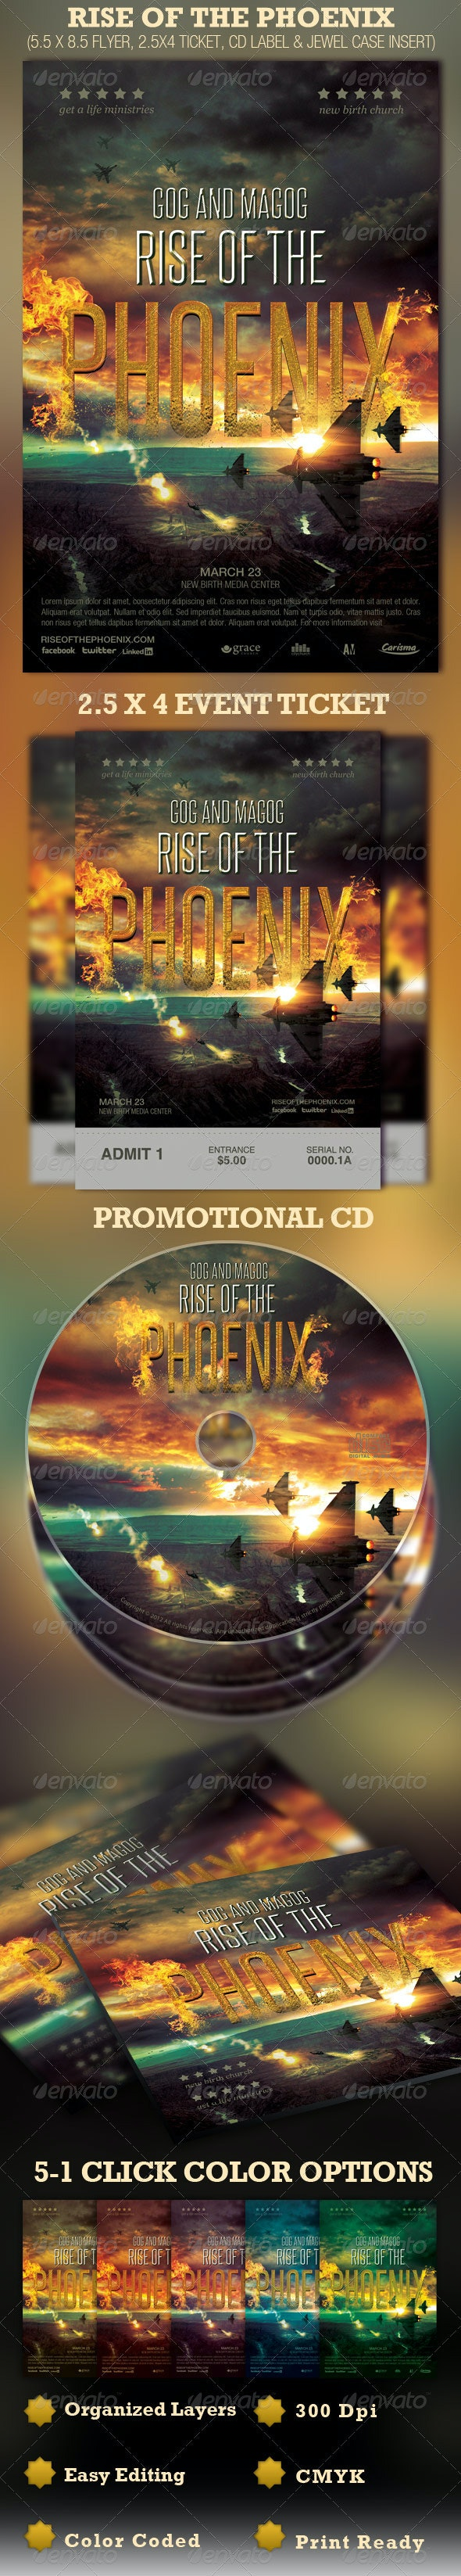 Rise of the Phoenix Flyer, Ticket and CD Template - Church Flyers